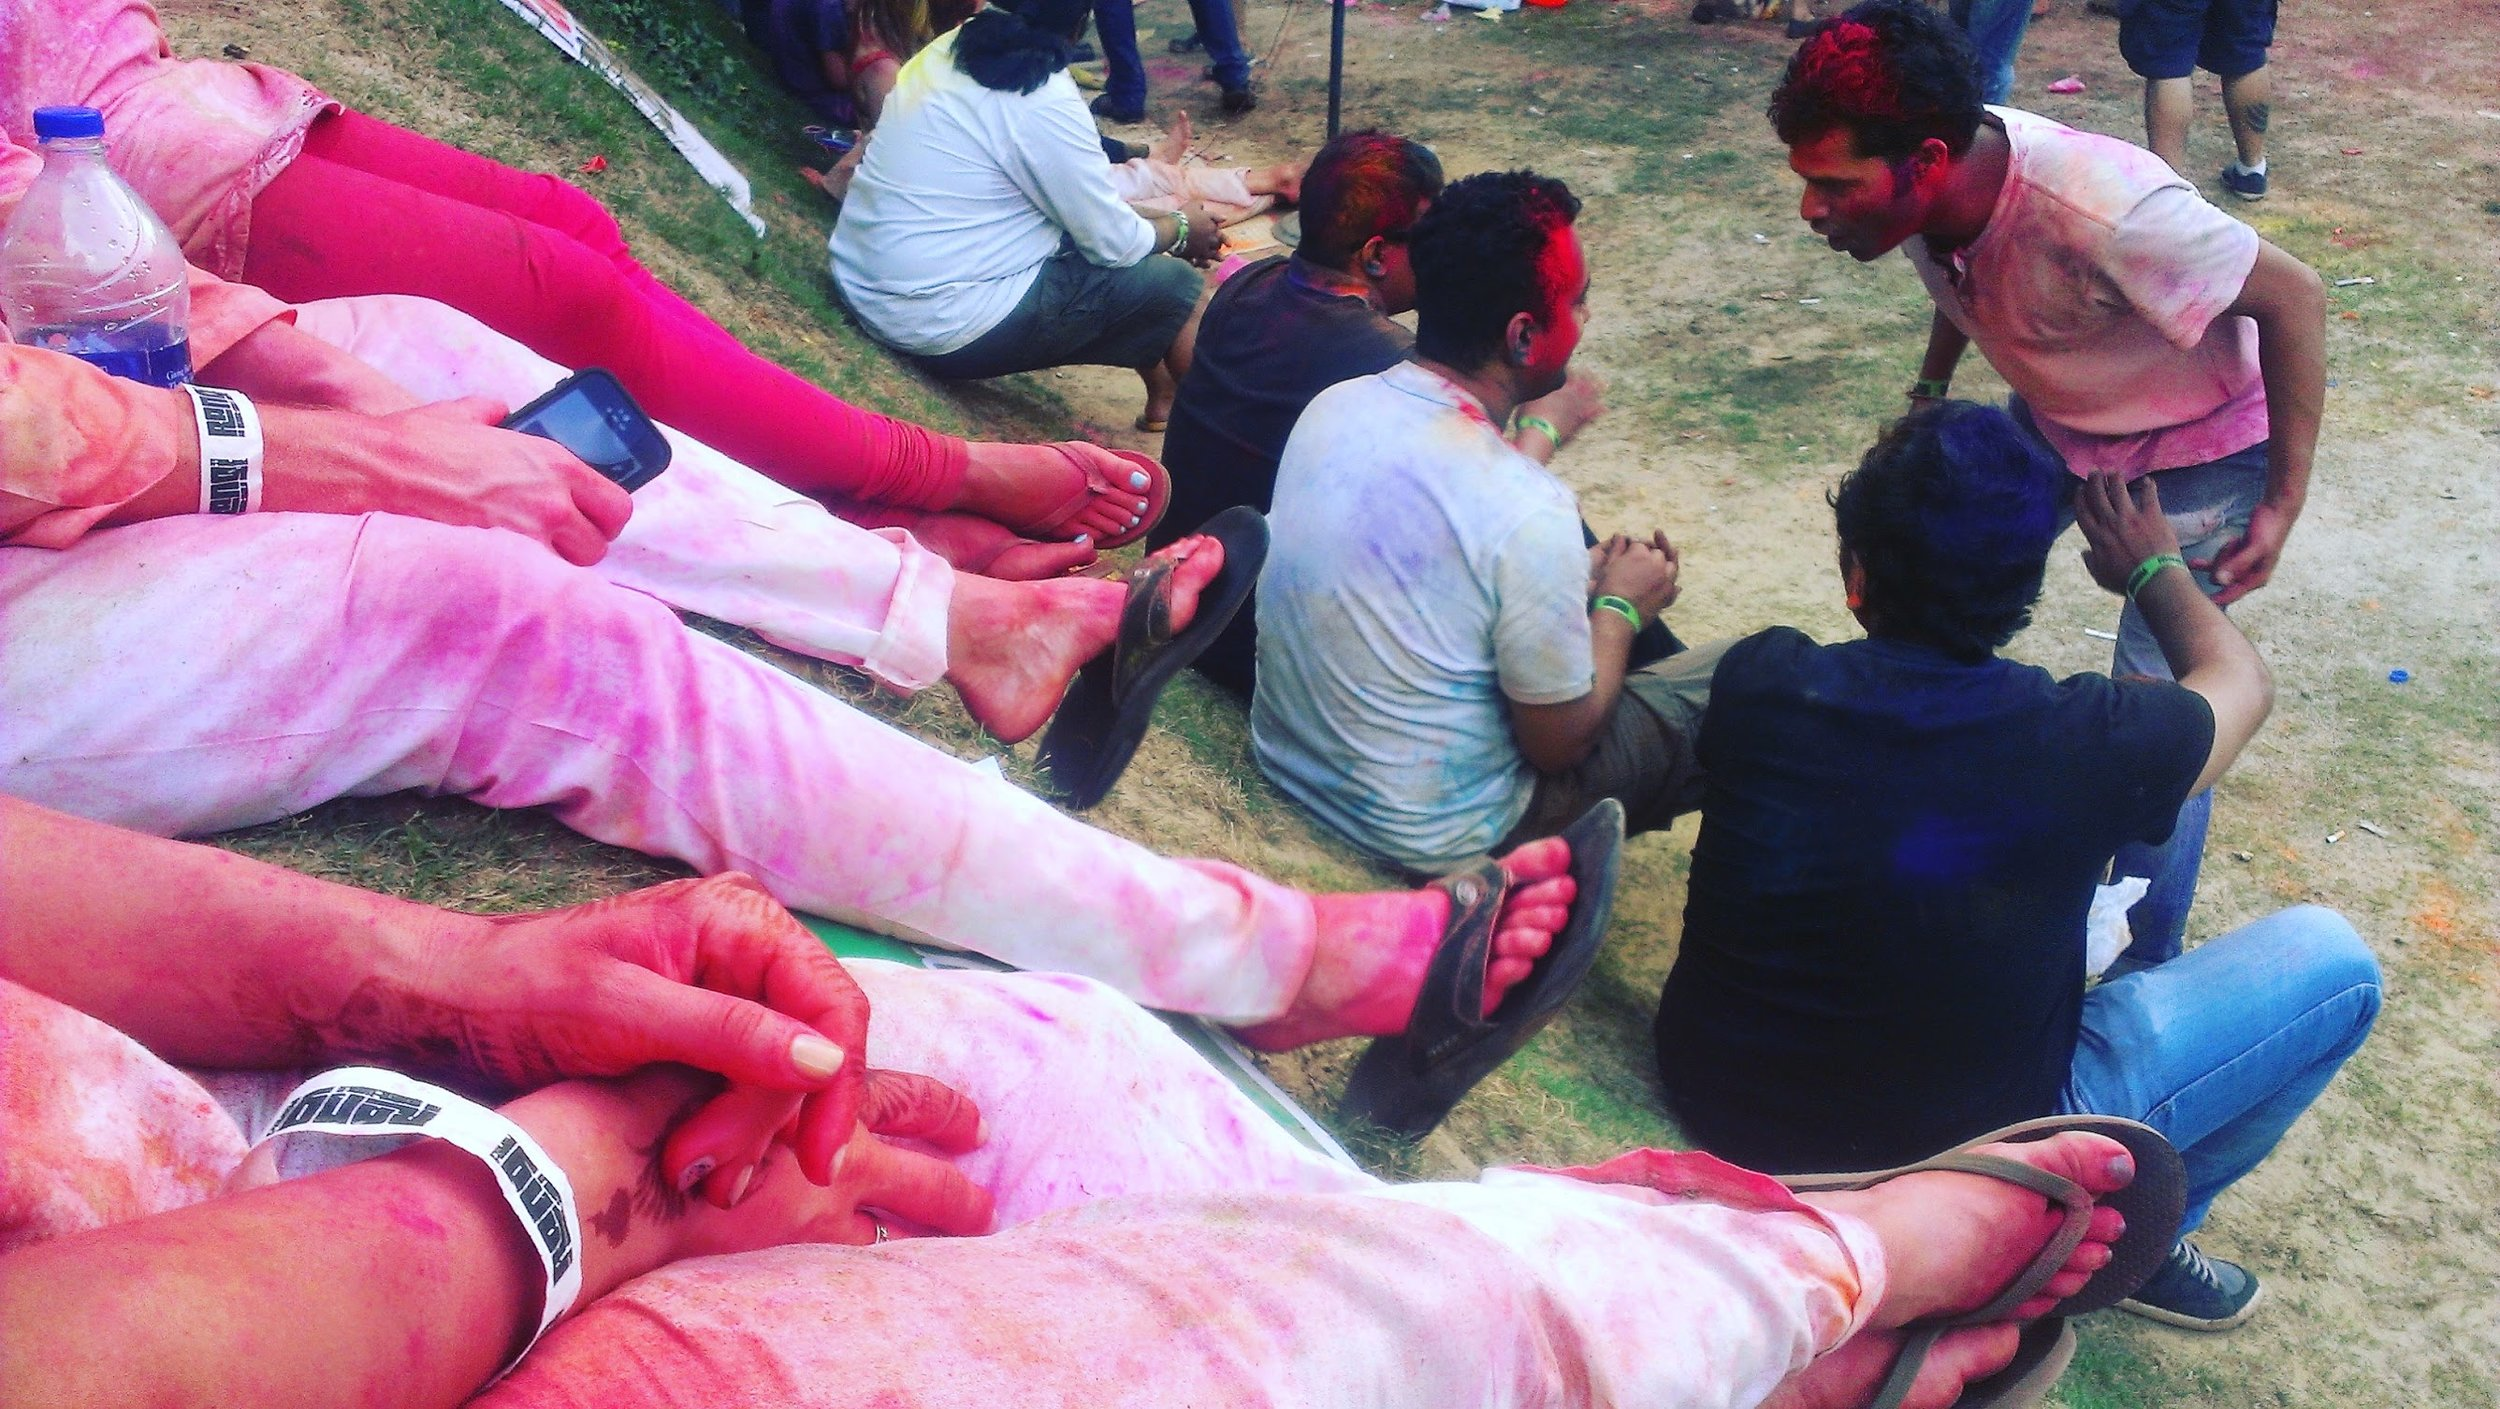 Some serious doing nothing at Holi in India.